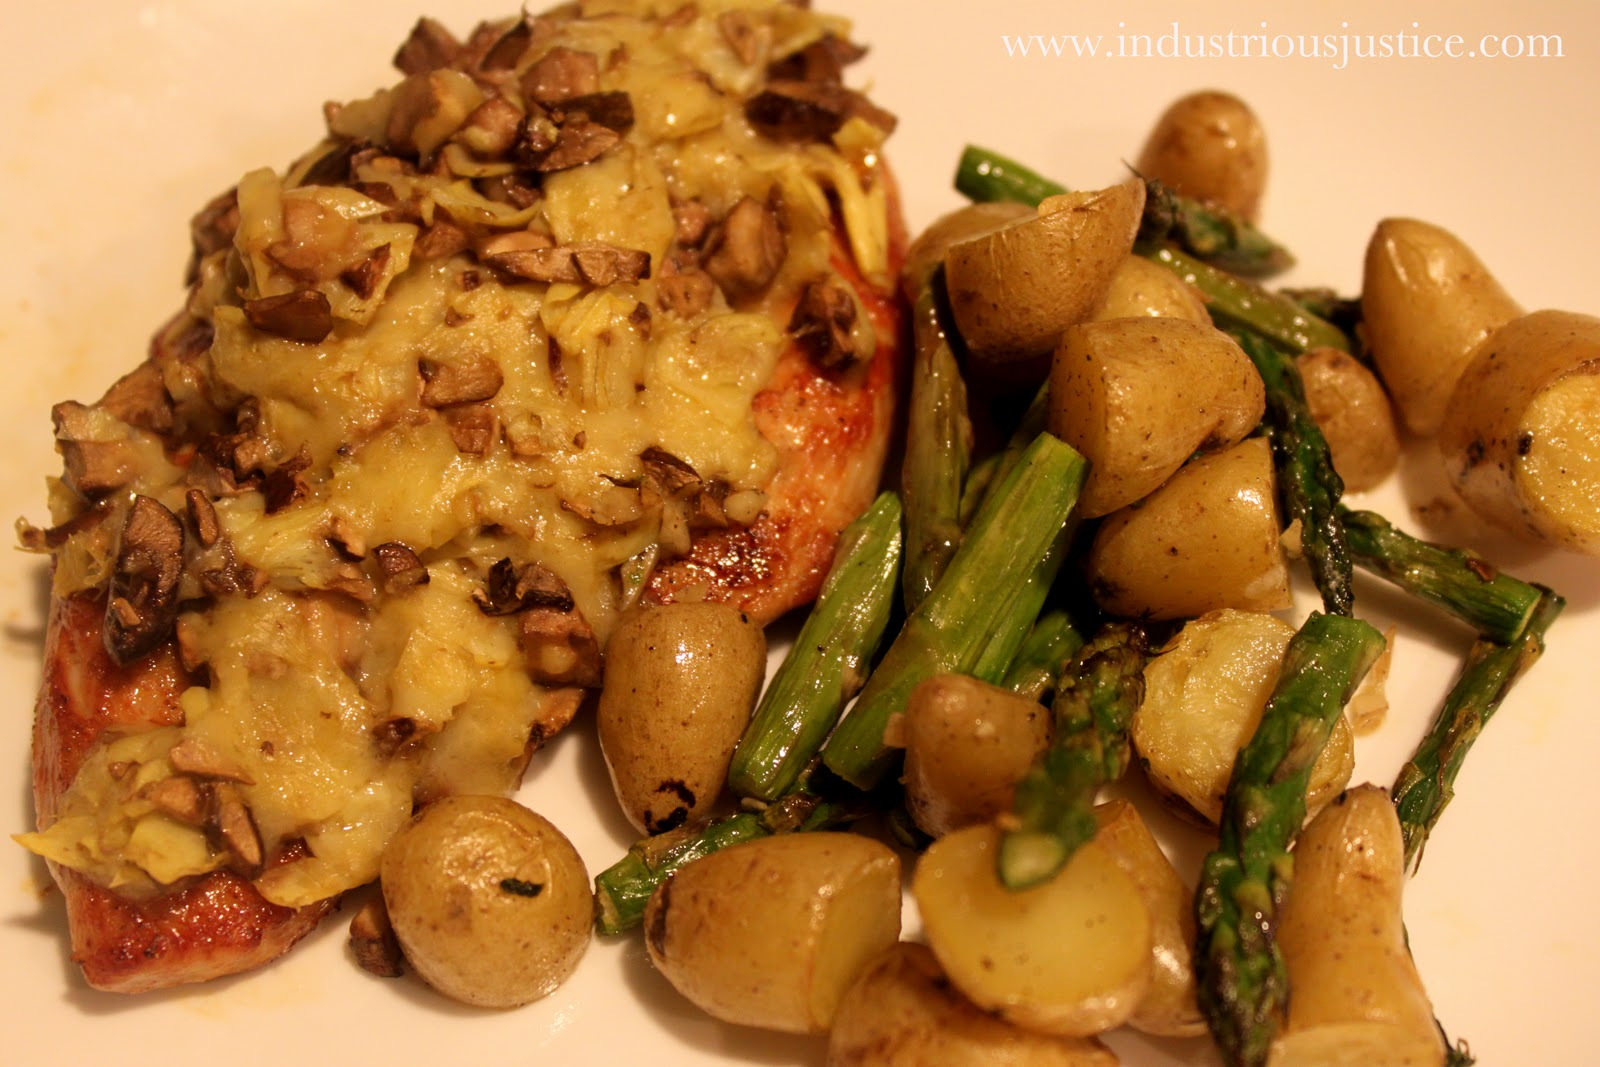 ... justice: Recipe: Artichoke and Mushroom Crusted Chicken Breasts